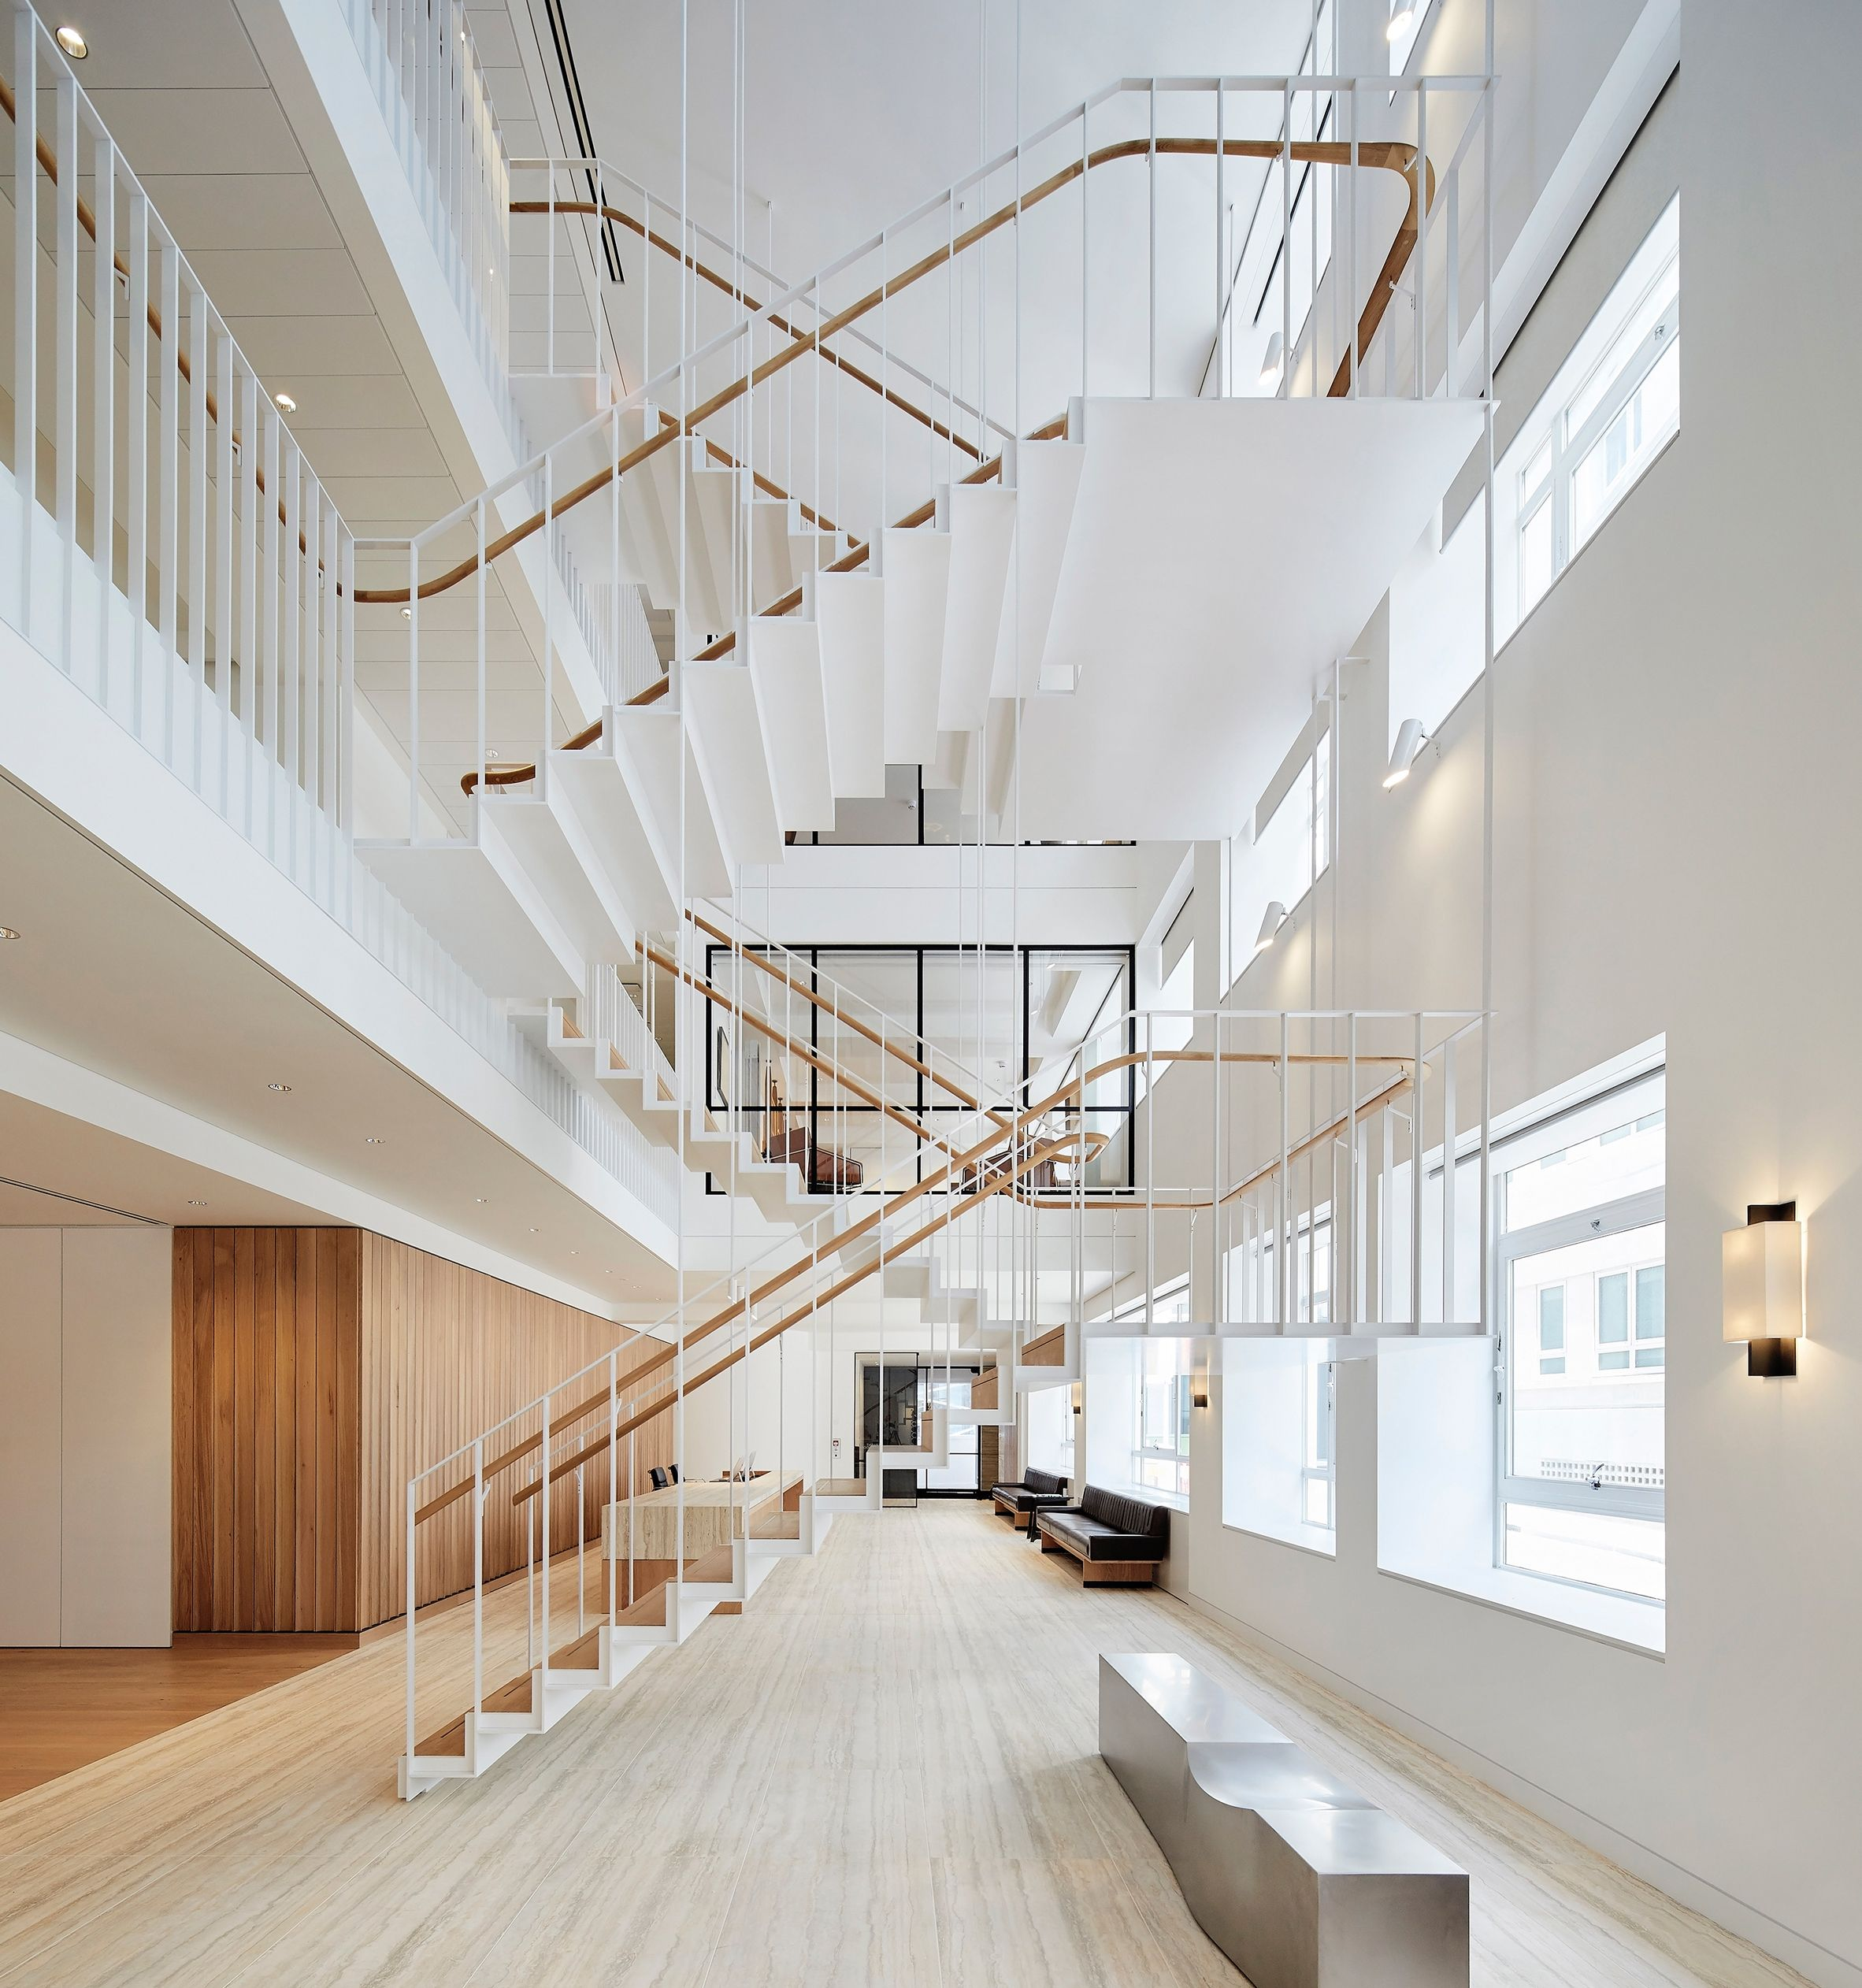 Suspended Style 32 Floating Staircase Ideas For The: Piercy & Company Suspends Steel Staircase In New Atrium Of